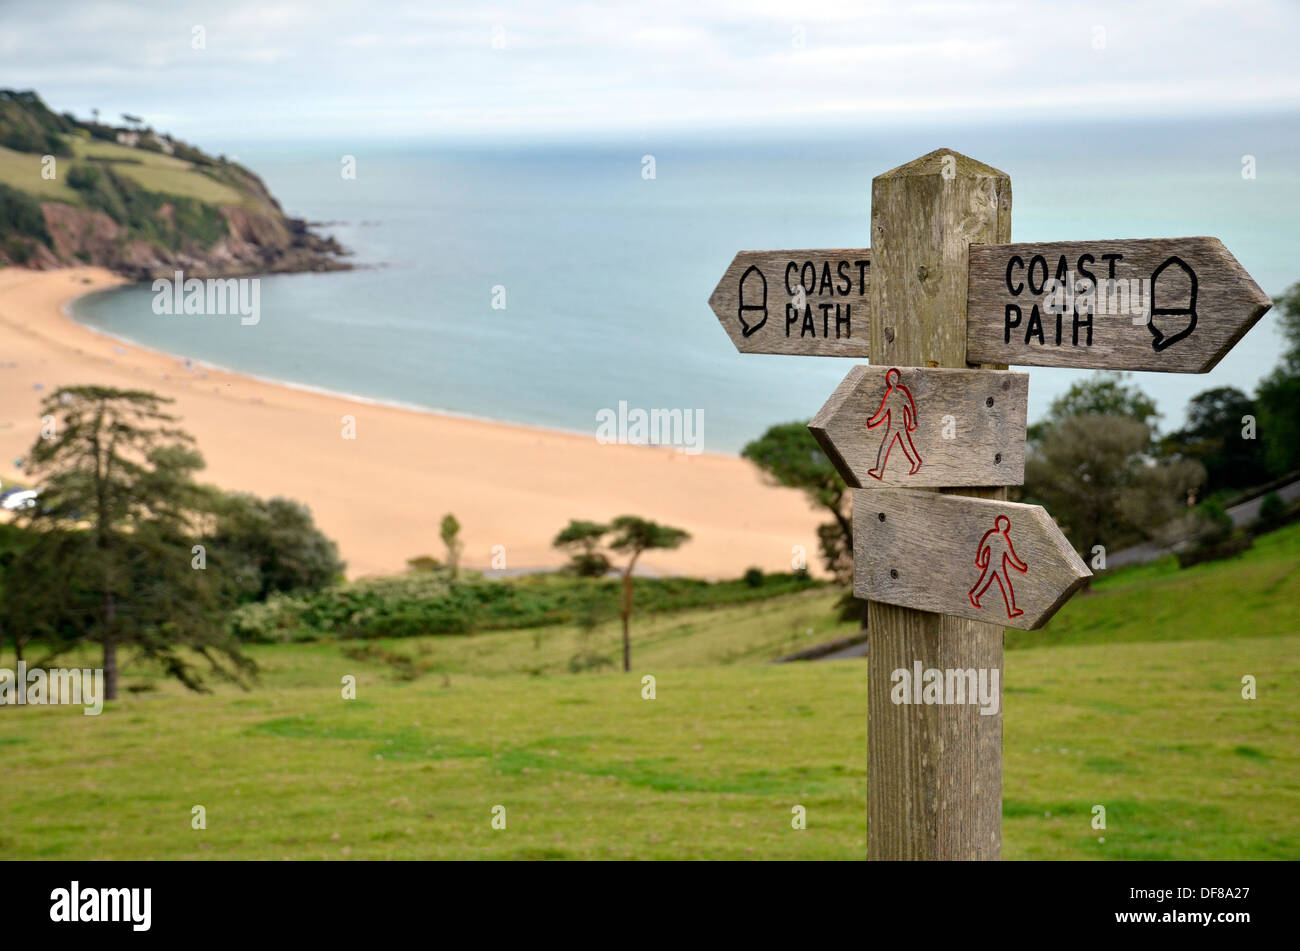 A Coastal Path signpost on the South Devon coast at Blackpool Sands - Stock Image